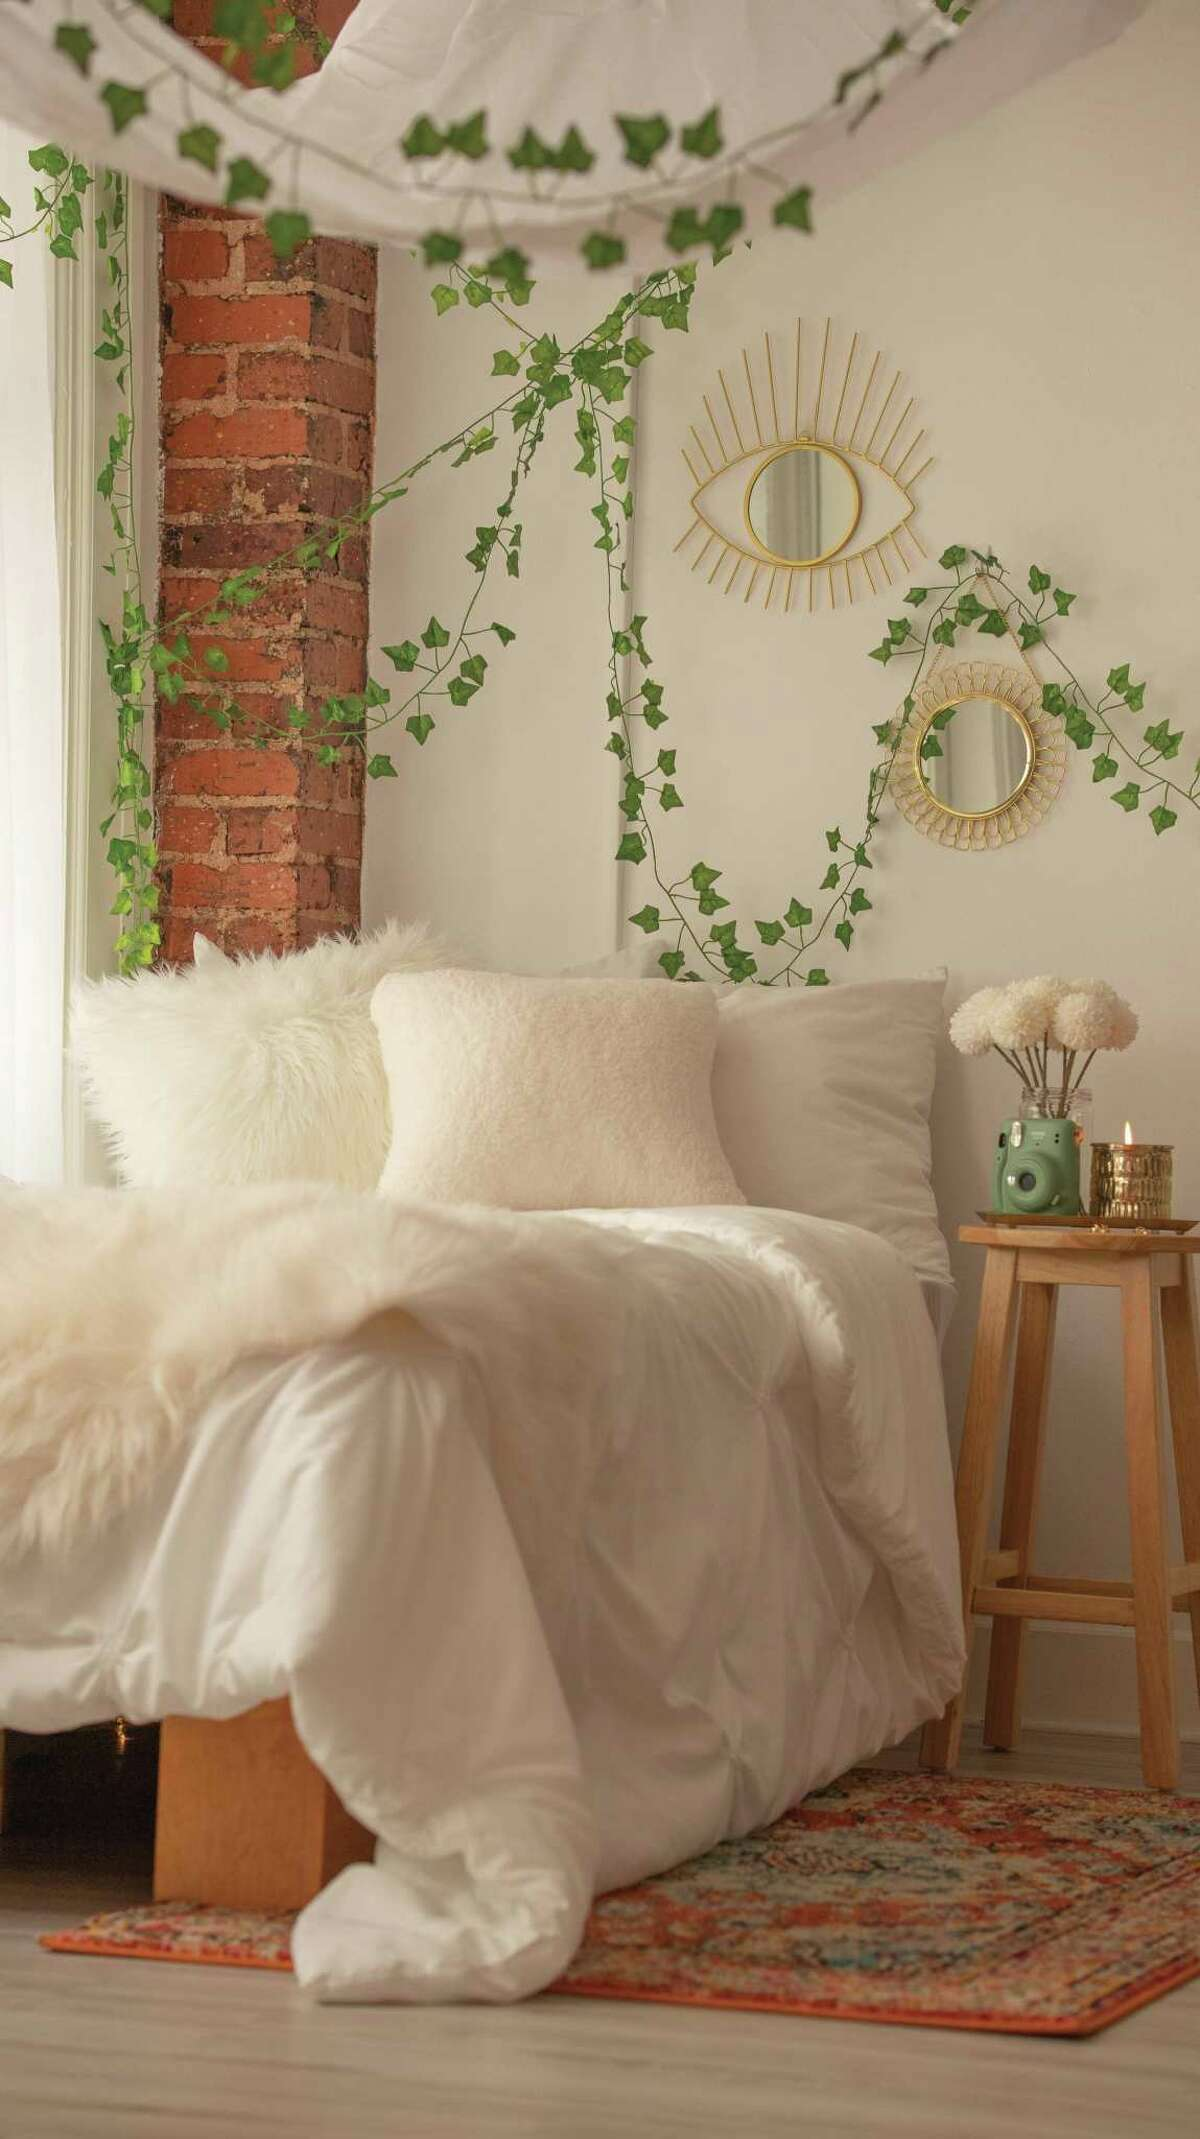 Forever 21 is launching a line of home goods.